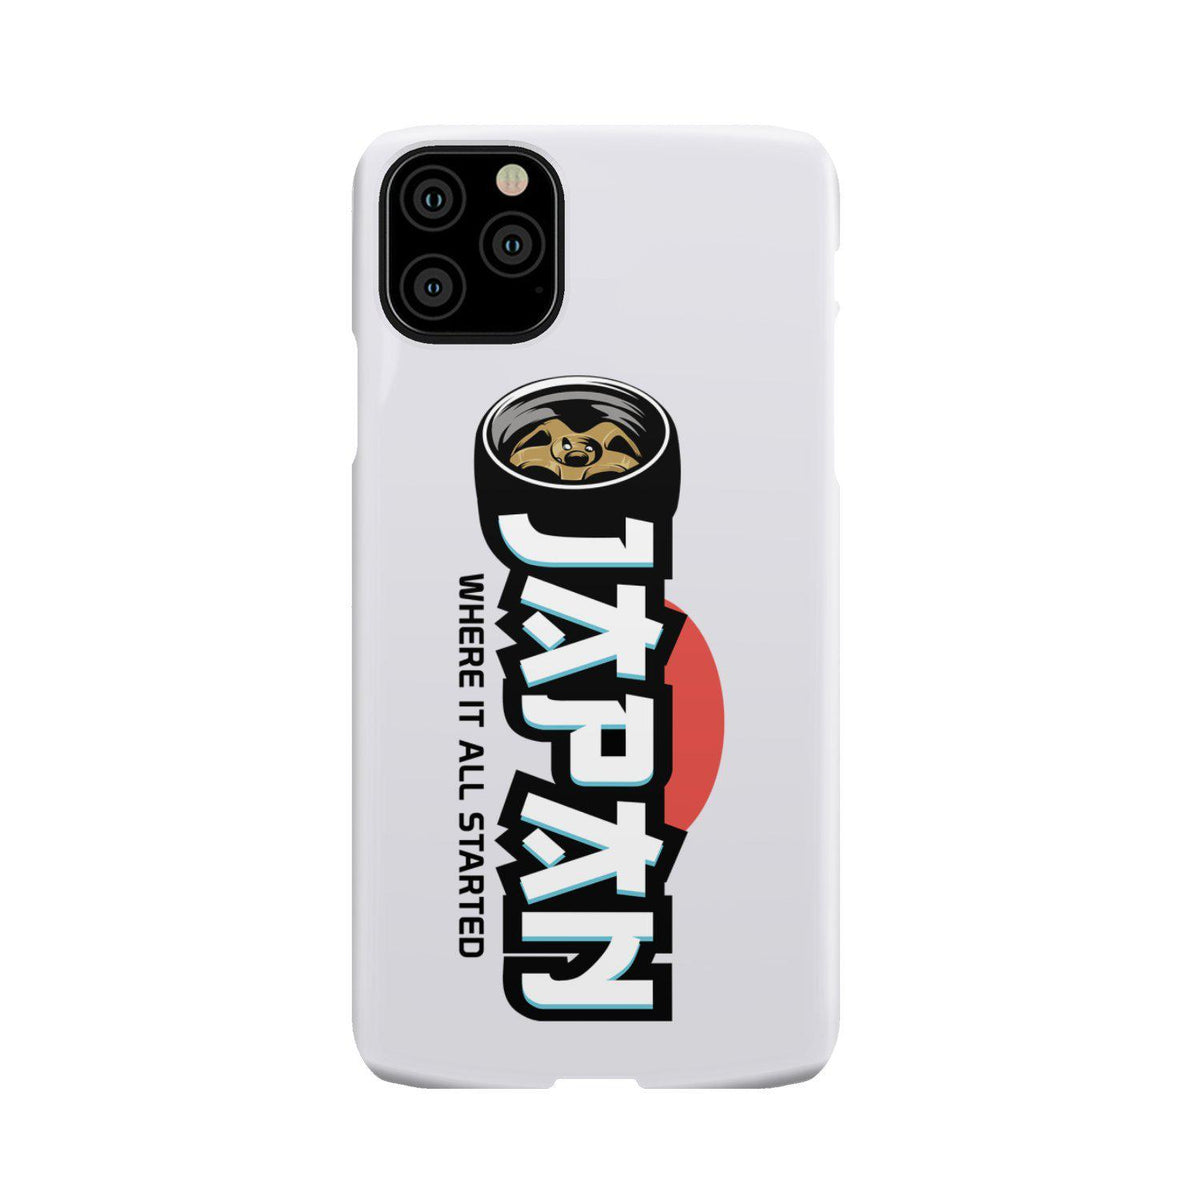 Japan - Where It All Started - Snap Case - for Apple iPhone Models - TunerLifestyle